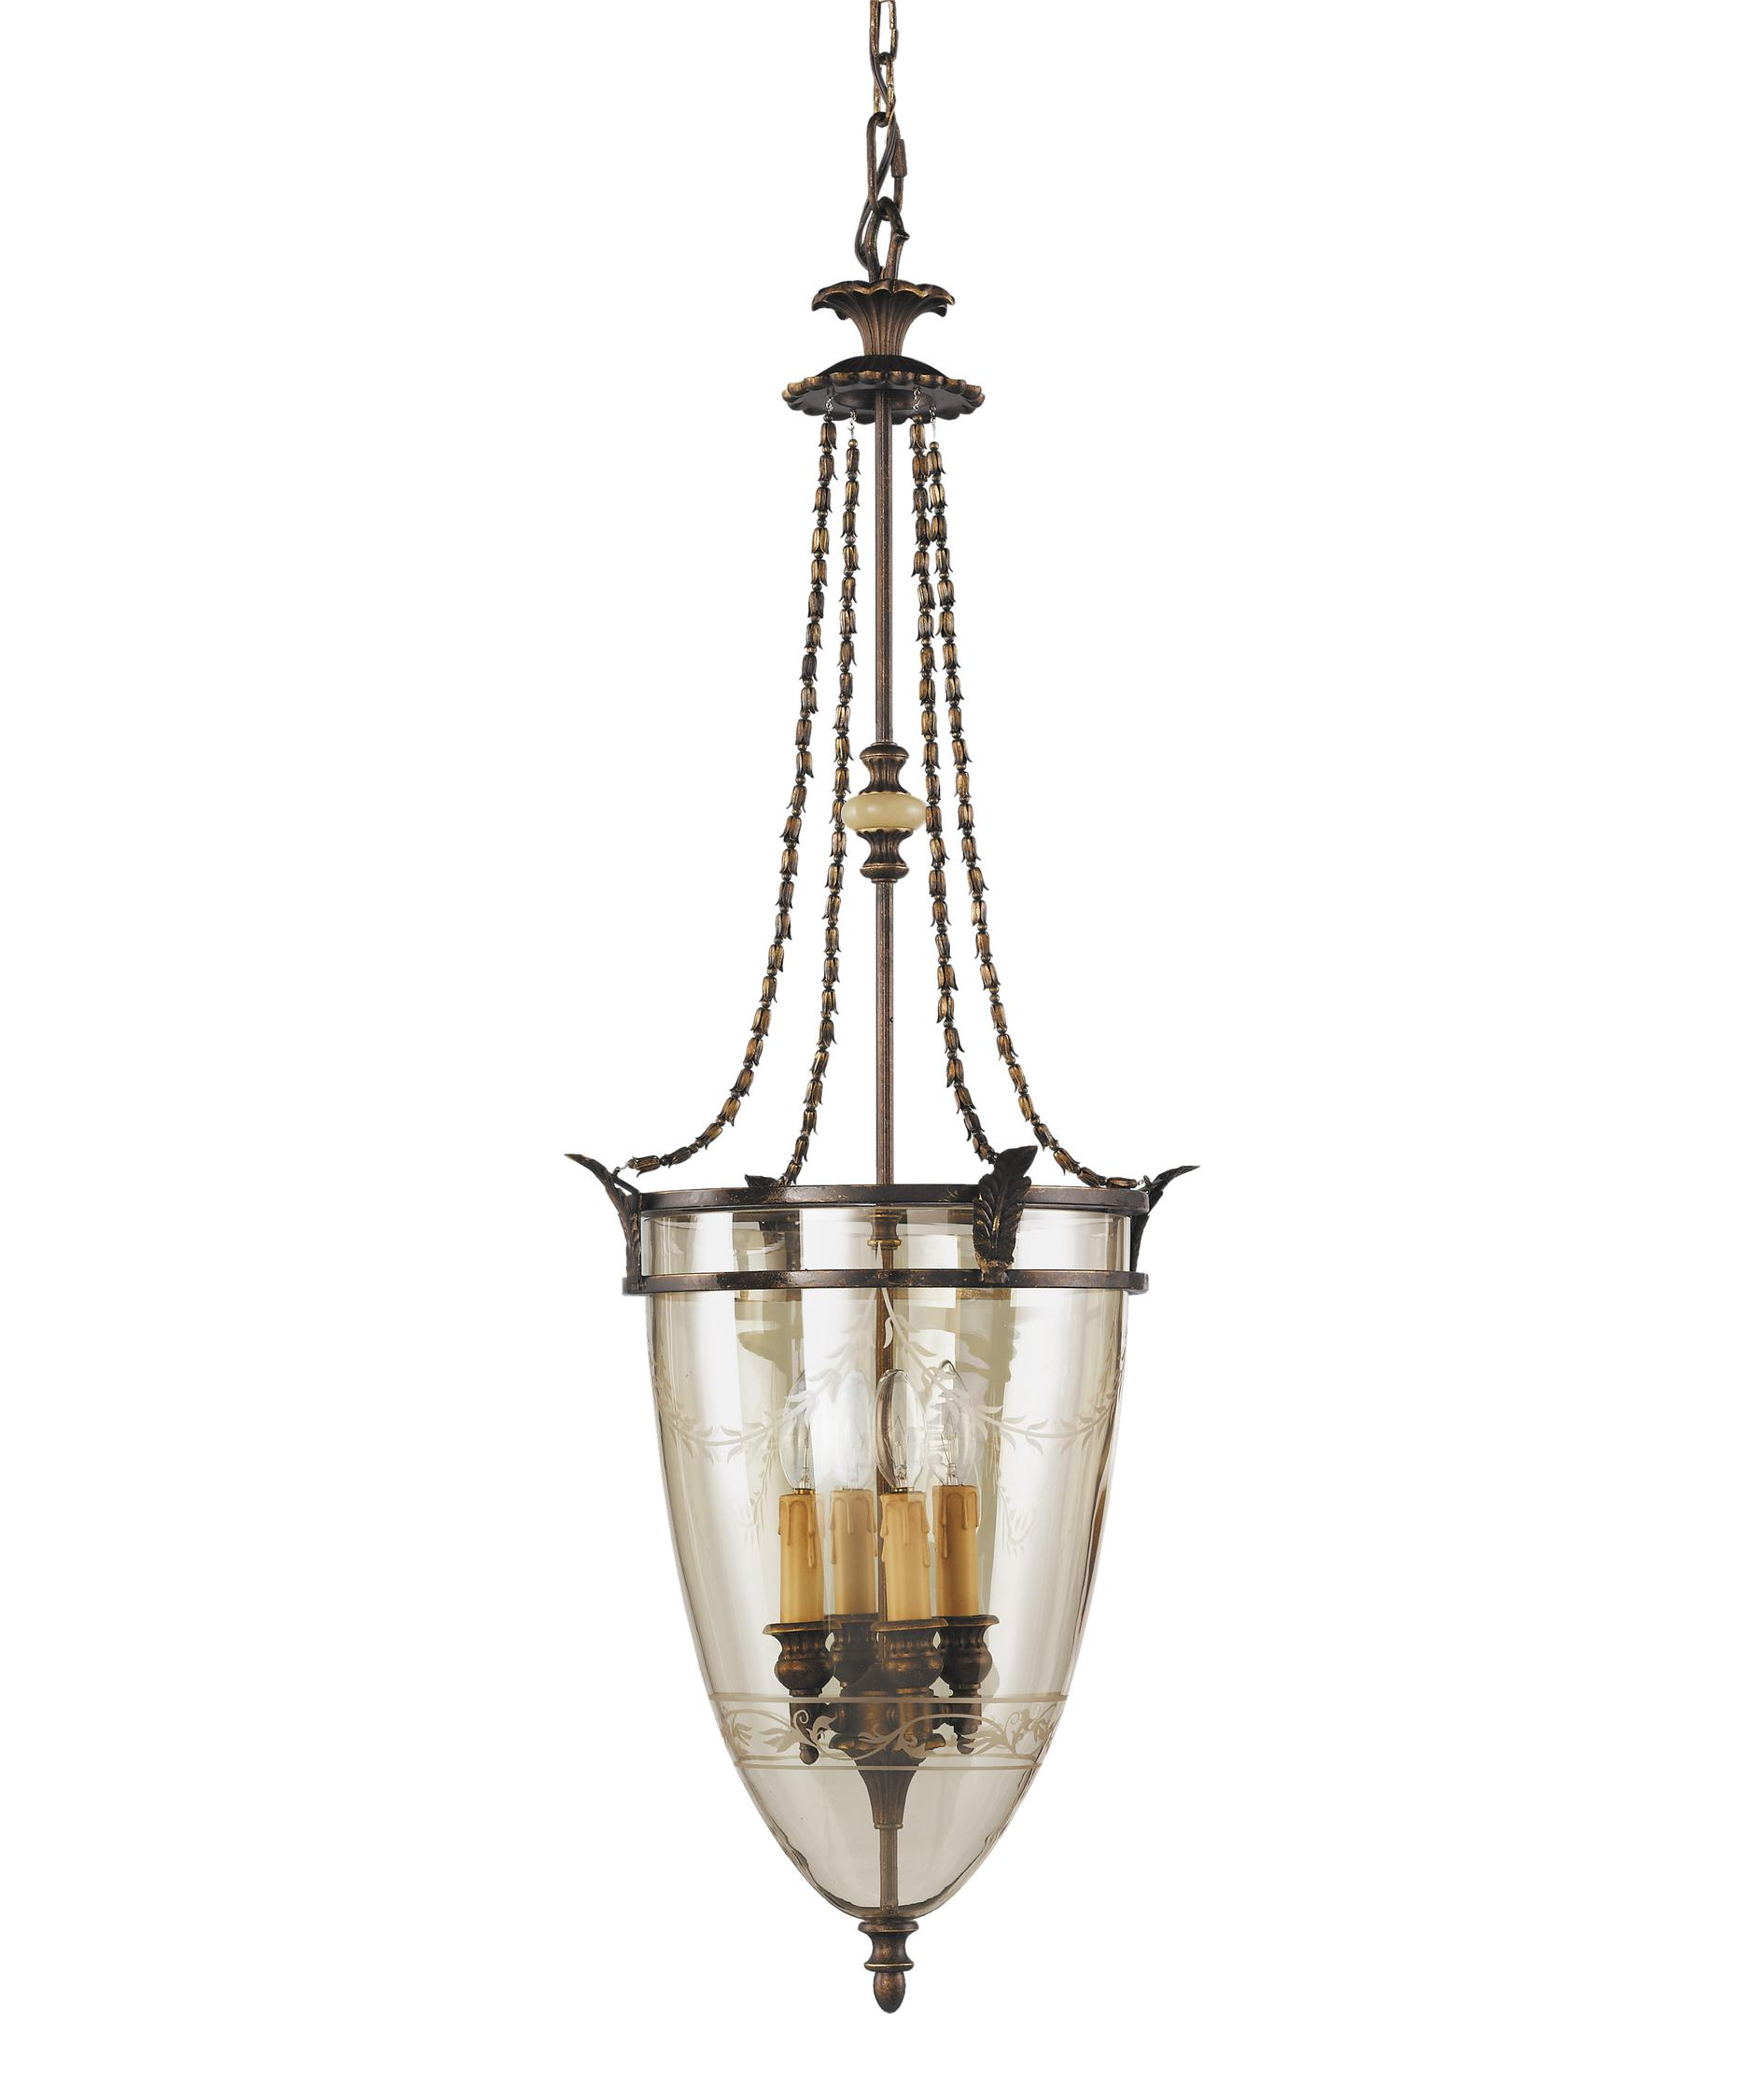 Murray Feiss Fusion Collection: Murray Feiss Tres Chic Belle Fleur 14 Inch Large Pendant